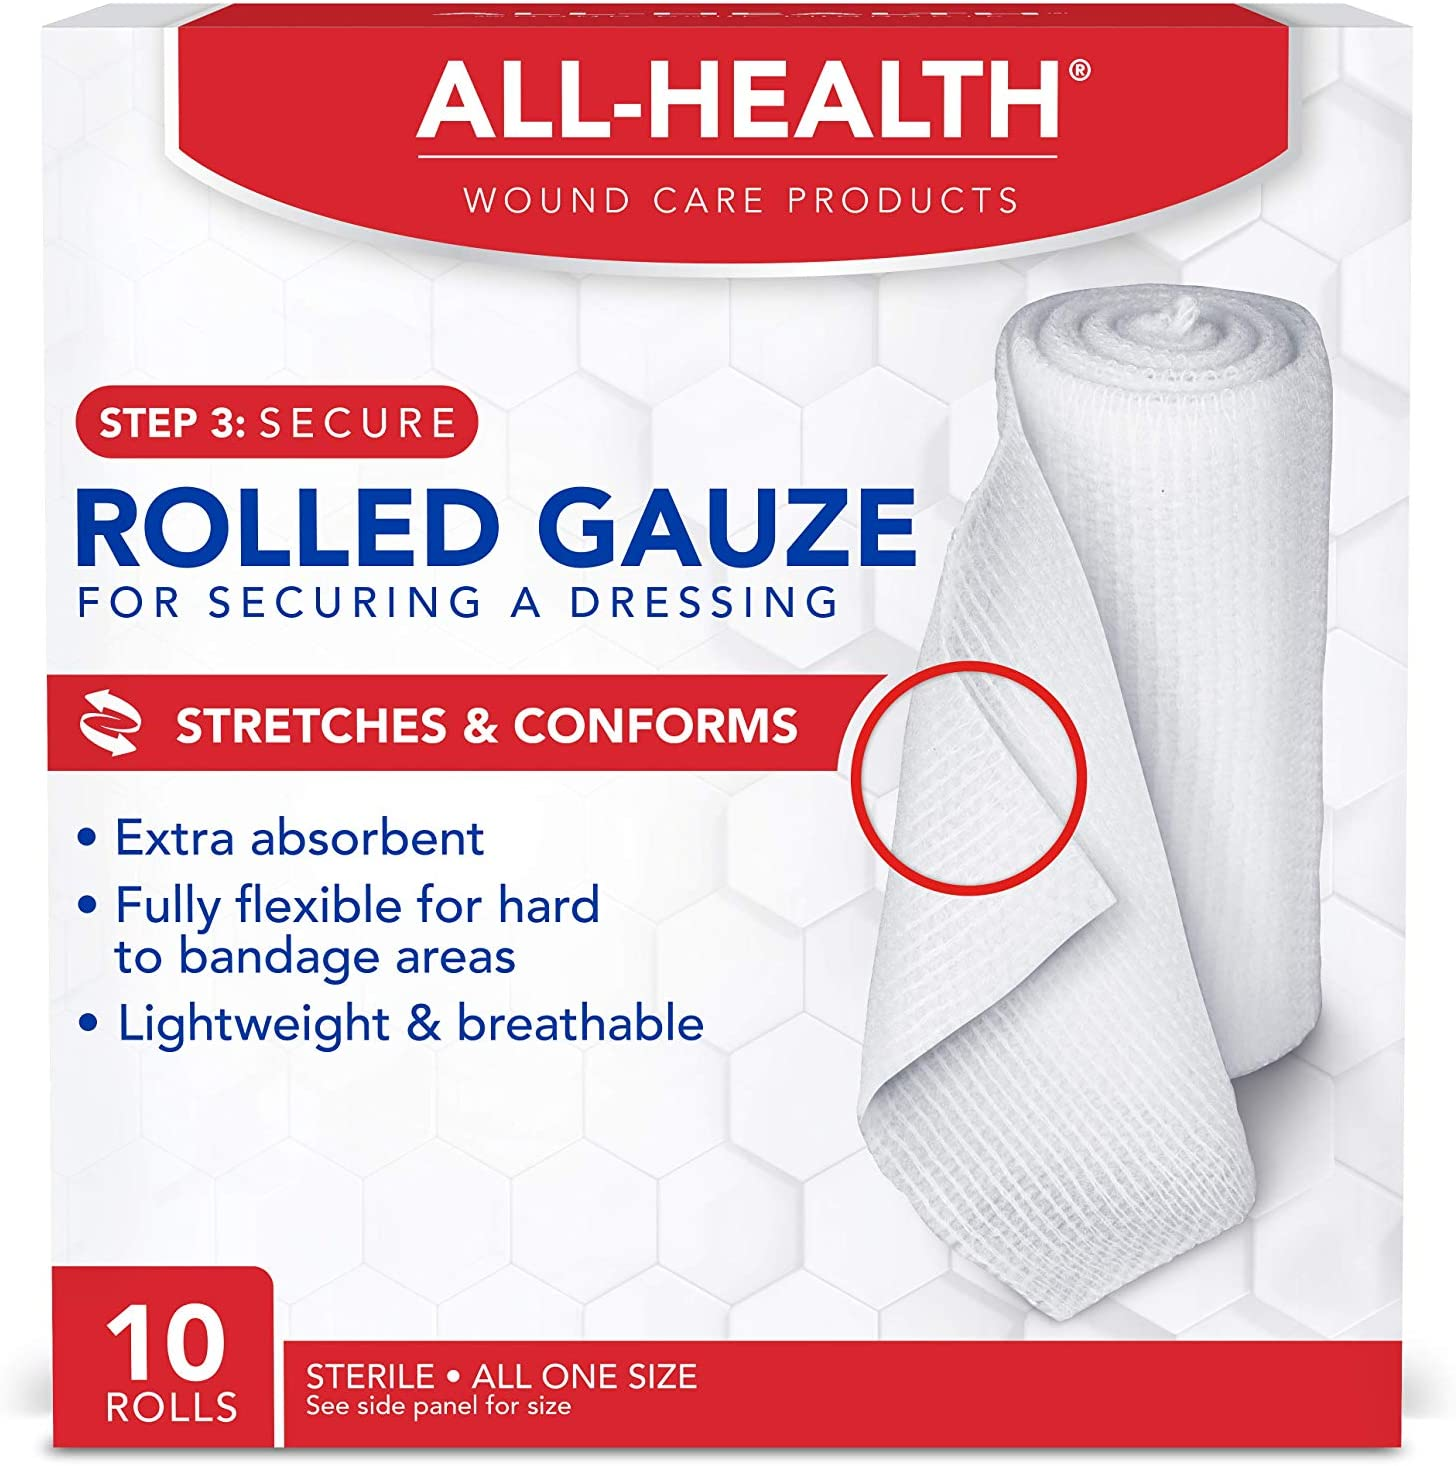 All Health Rolled Gauze Pads, 3 X 2.5 Yds | for Cleaning or Covering Wounds as Wound Dressing, Helps Prevent Infection, 10 Rolls: Health & Personal Care